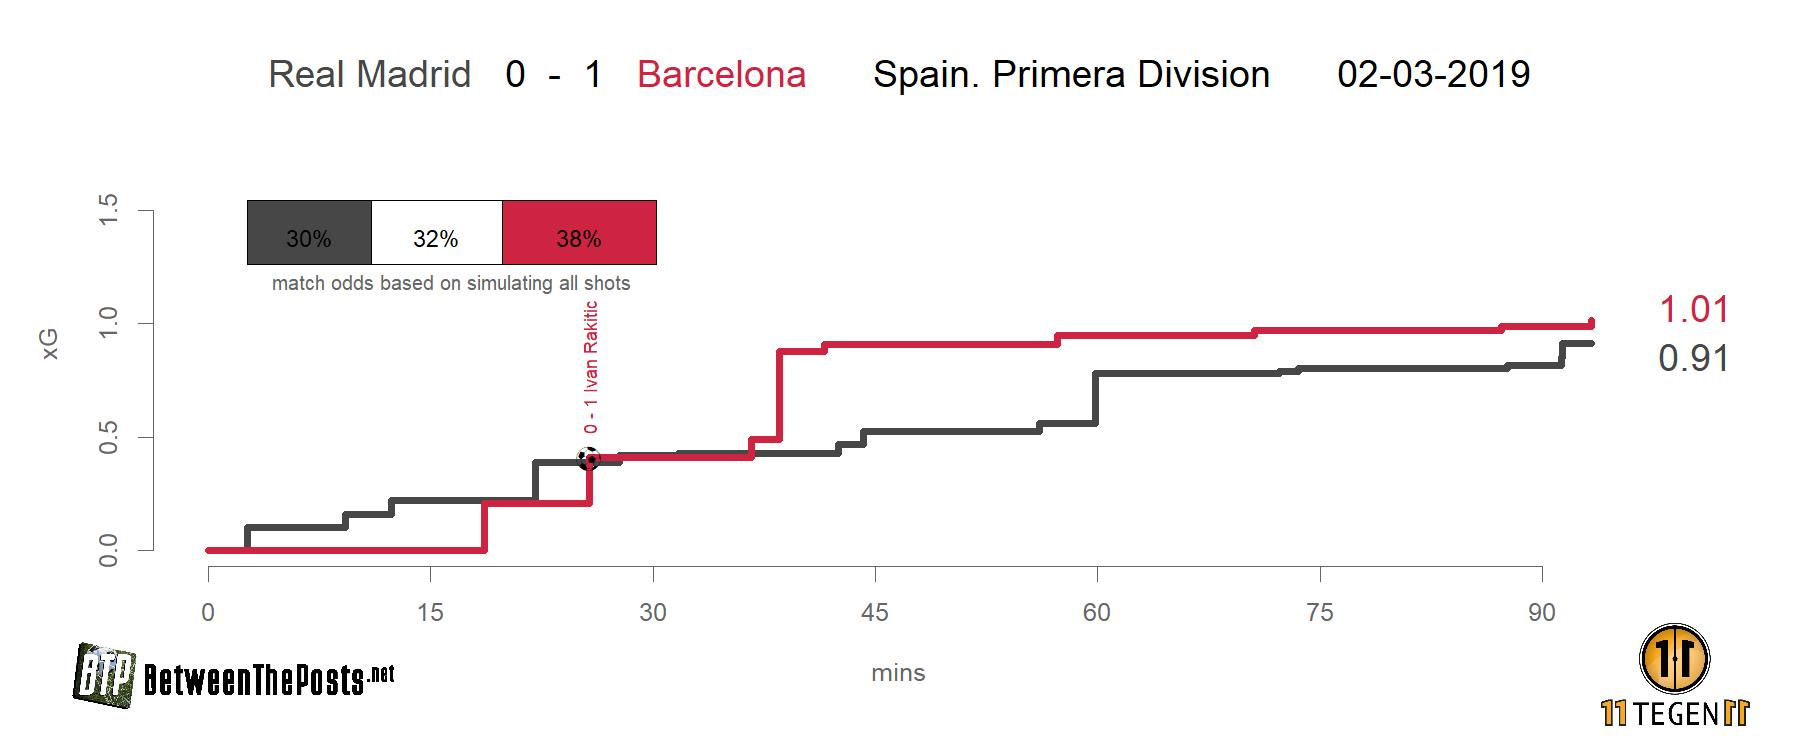 Expected goals plot Real Madrid - Barcelona 0-1 LaLiga